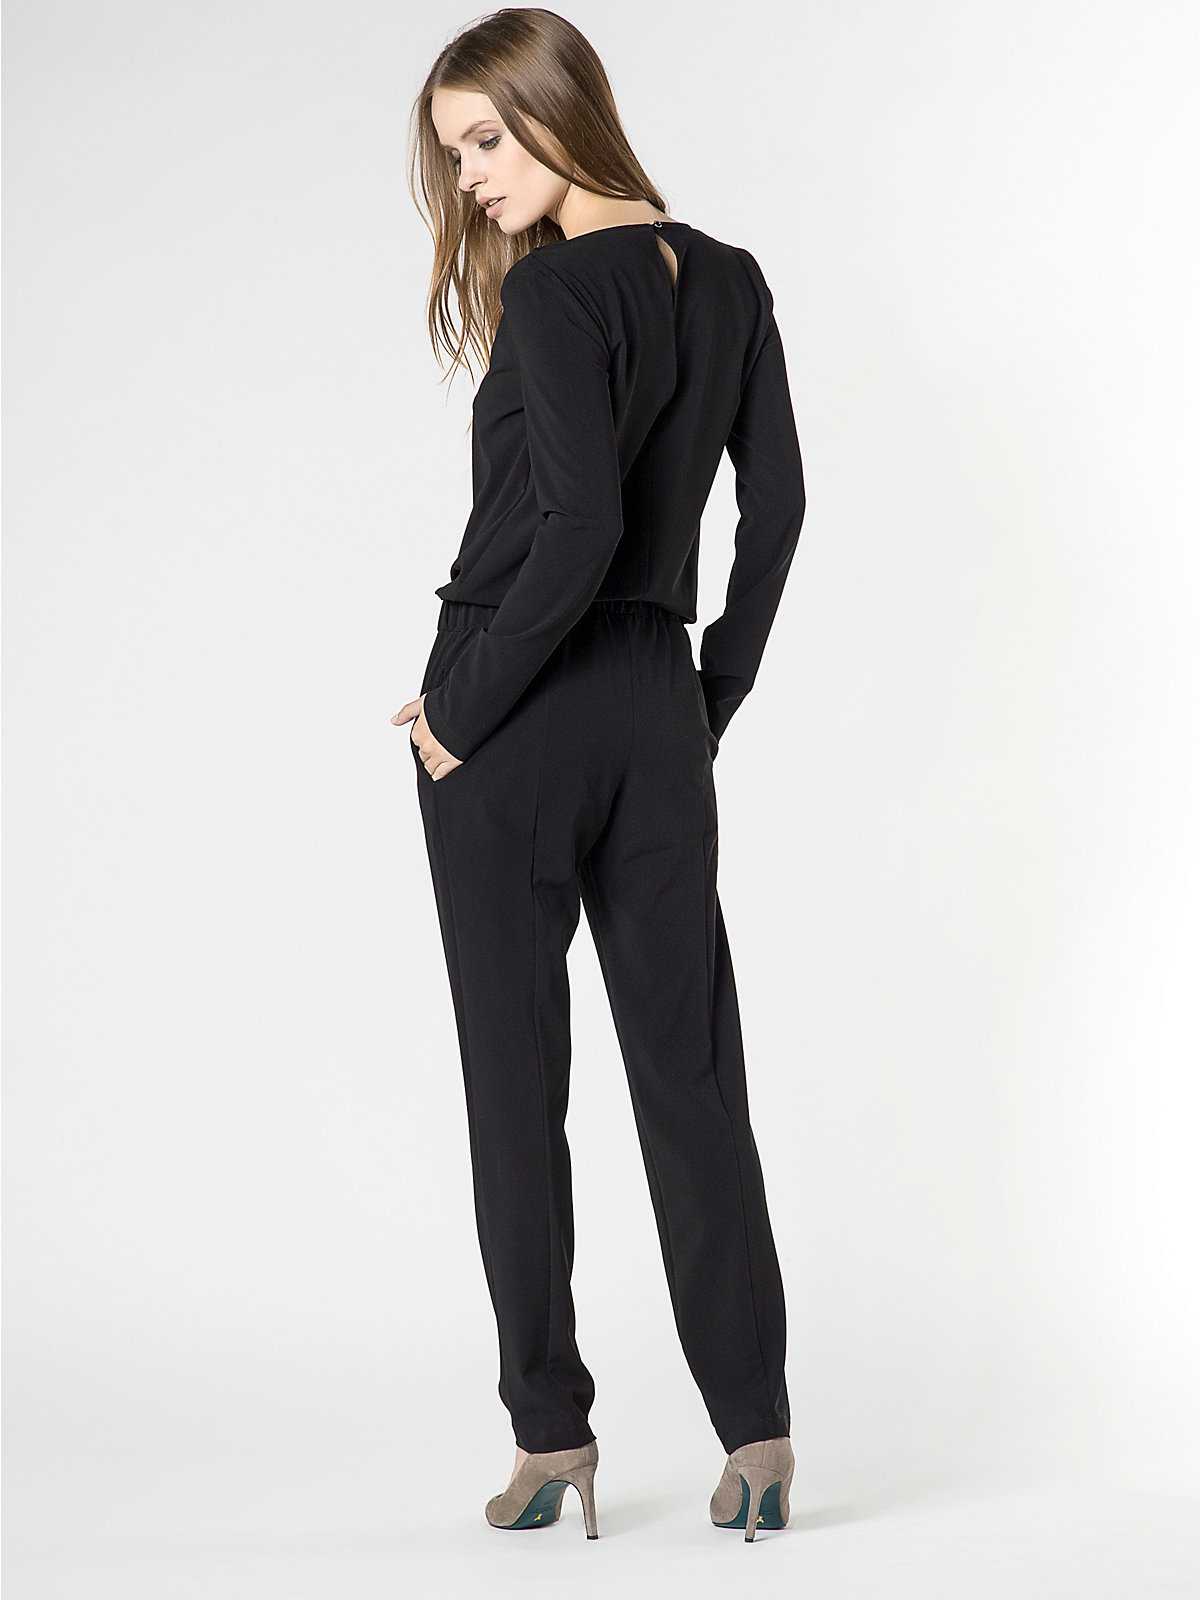 patrizia pepe long jumpsuit in viscose crepe in black nero lyst. Black Bedroom Furniture Sets. Home Design Ideas